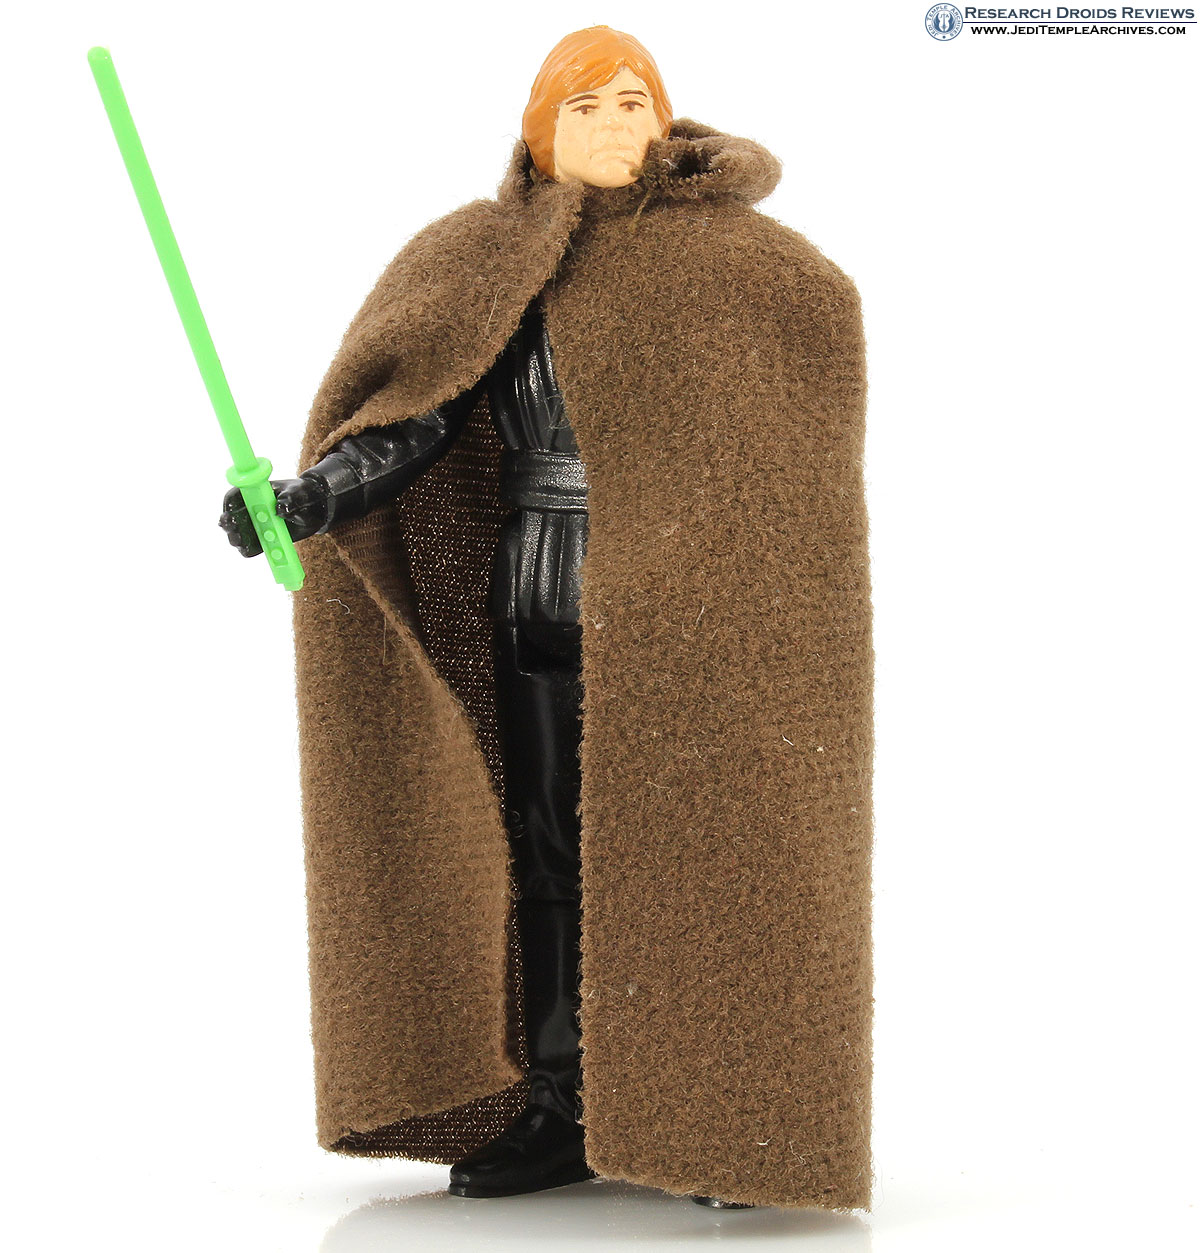 Luke Skywalker (Jedi Knight outfit - Green Lightsaber)